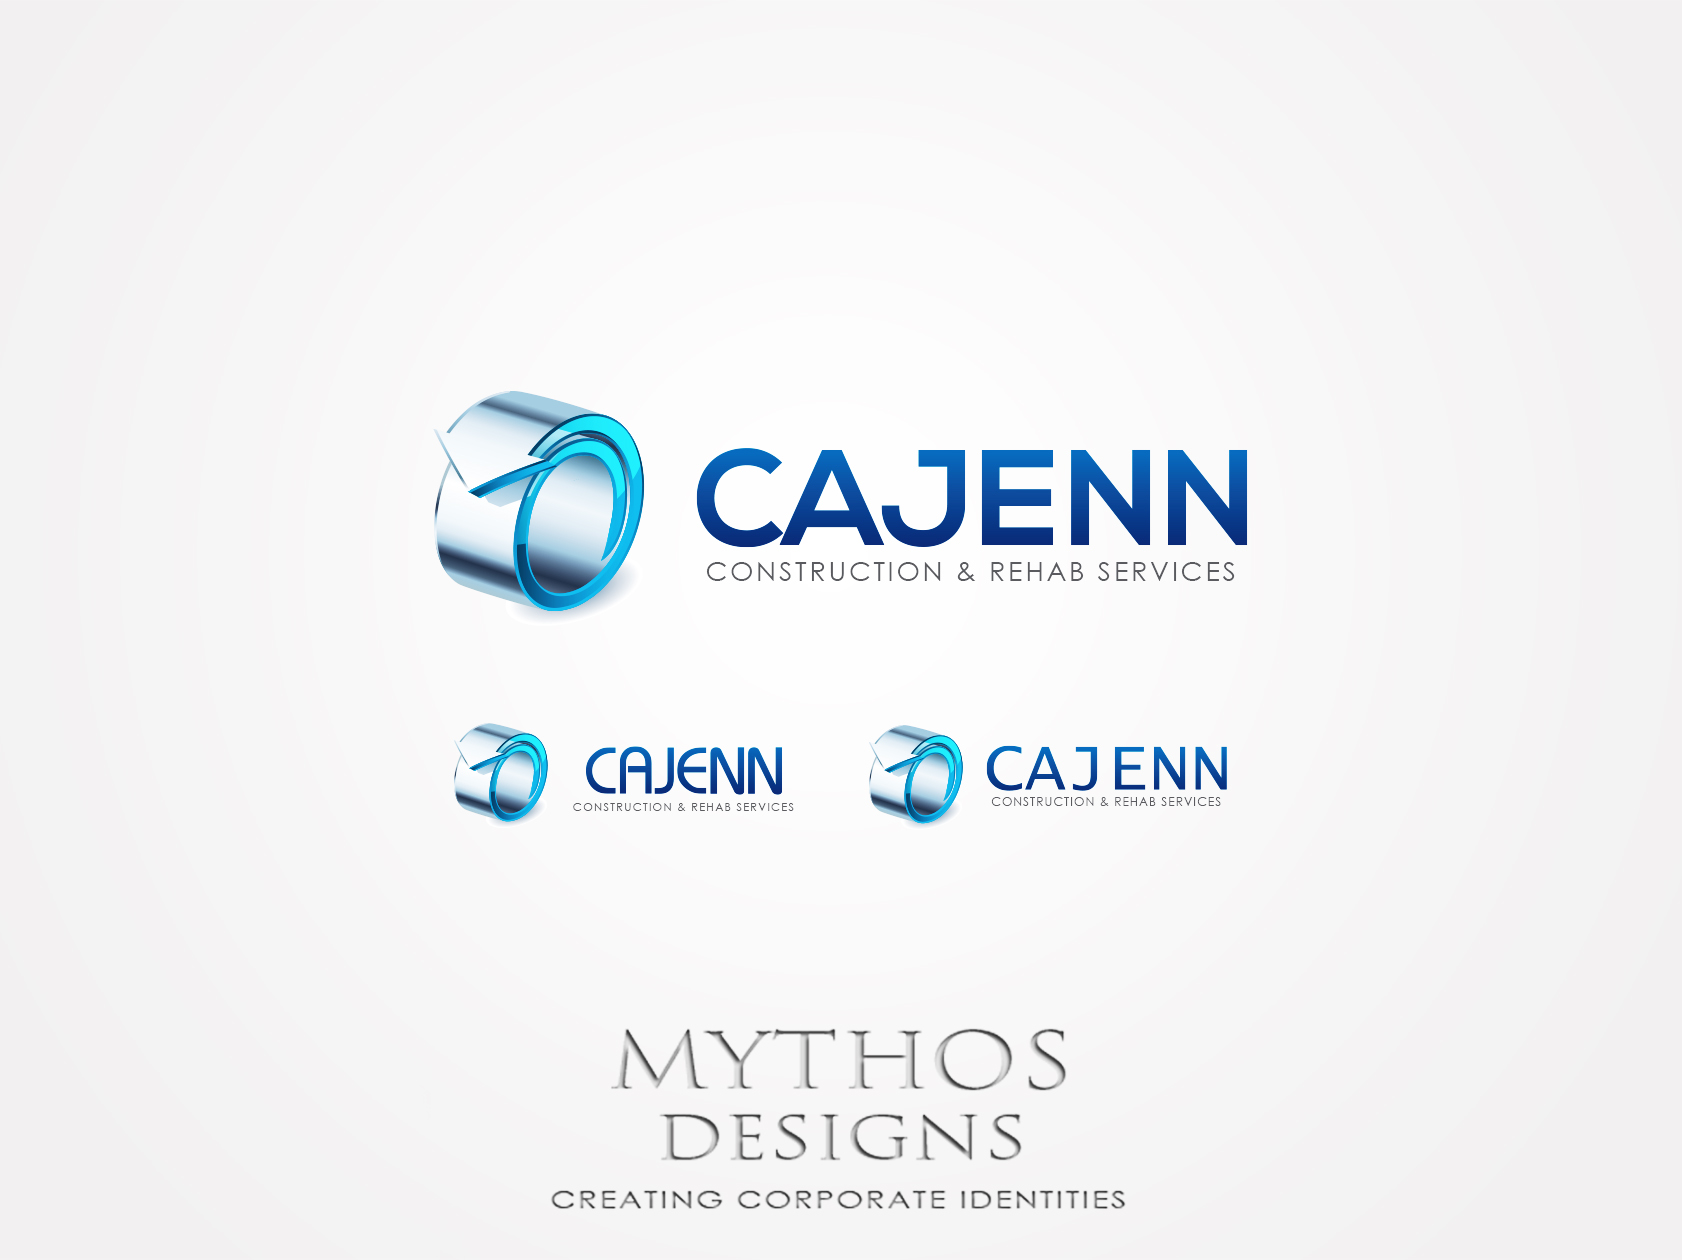 Logo Design by Mythos Designs - Entry No. 305 in the Logo Design Contest New Logo Design for CaJenn Construction & Rehab Services.